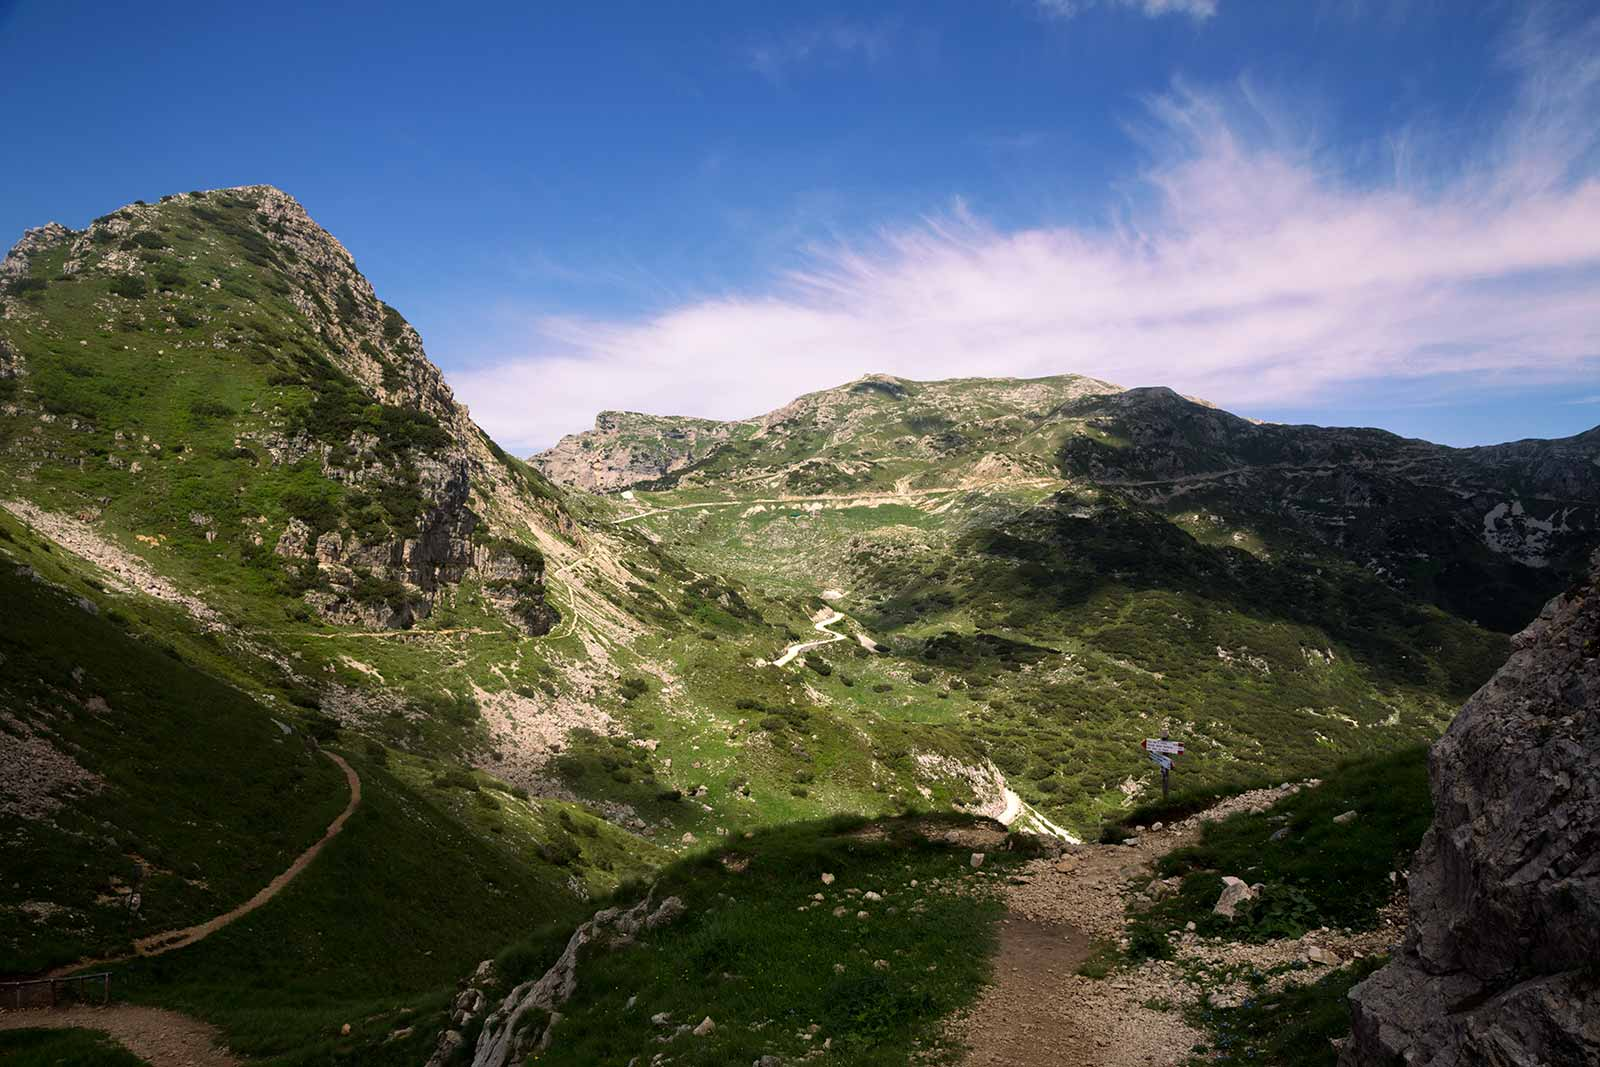 Strada delle 52 Gallerie starts at Bocchetta di Campiglia (altitude of 1216 m) and ends at the Porte del Pasubio (altitude of 1928 m).